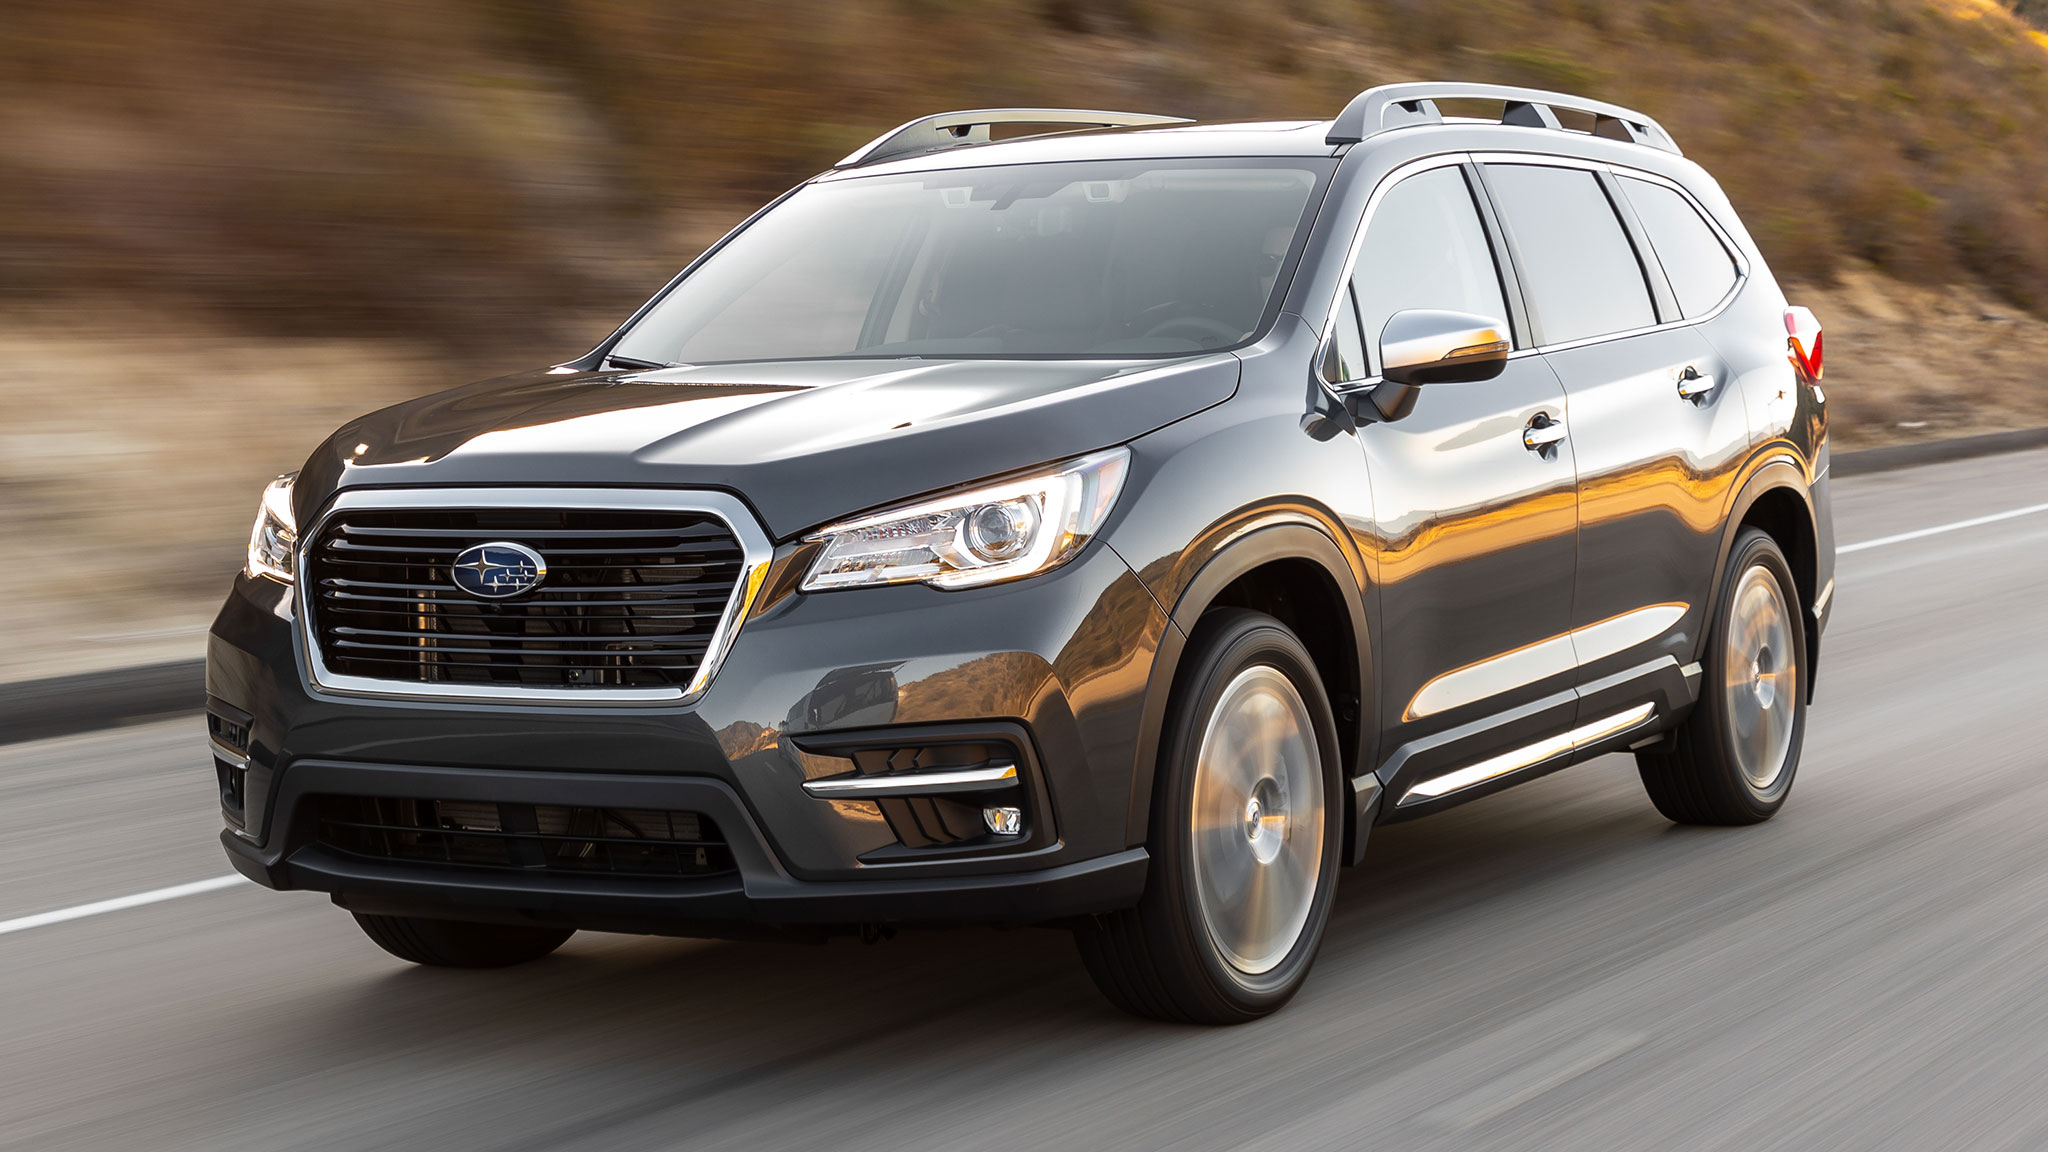 2021 subaru ascent engine options release date, automatic